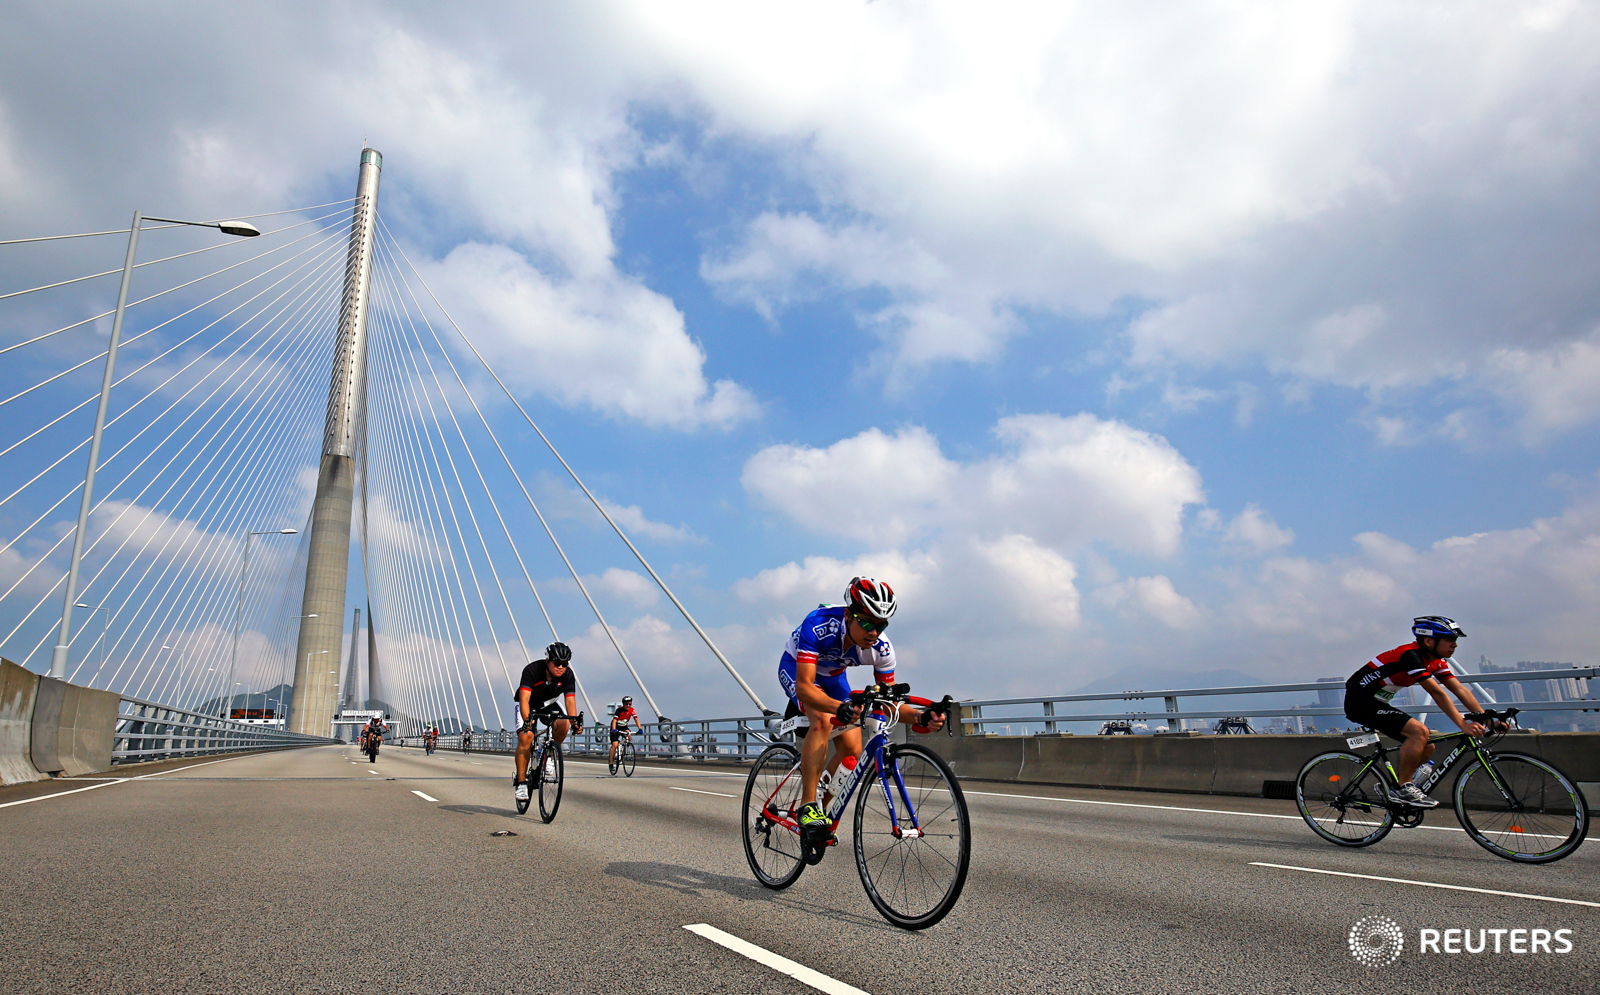 Cycling - Hong Kong Cyclothon 2016 - Hong Kong - 25/09/16 Competitors in action during 30 km Ride. The Hong Kong Cyclothon is the biggest cycling event in Hong Kong and features four races and five cycling activities. REUTERS/Yong Teck Lim